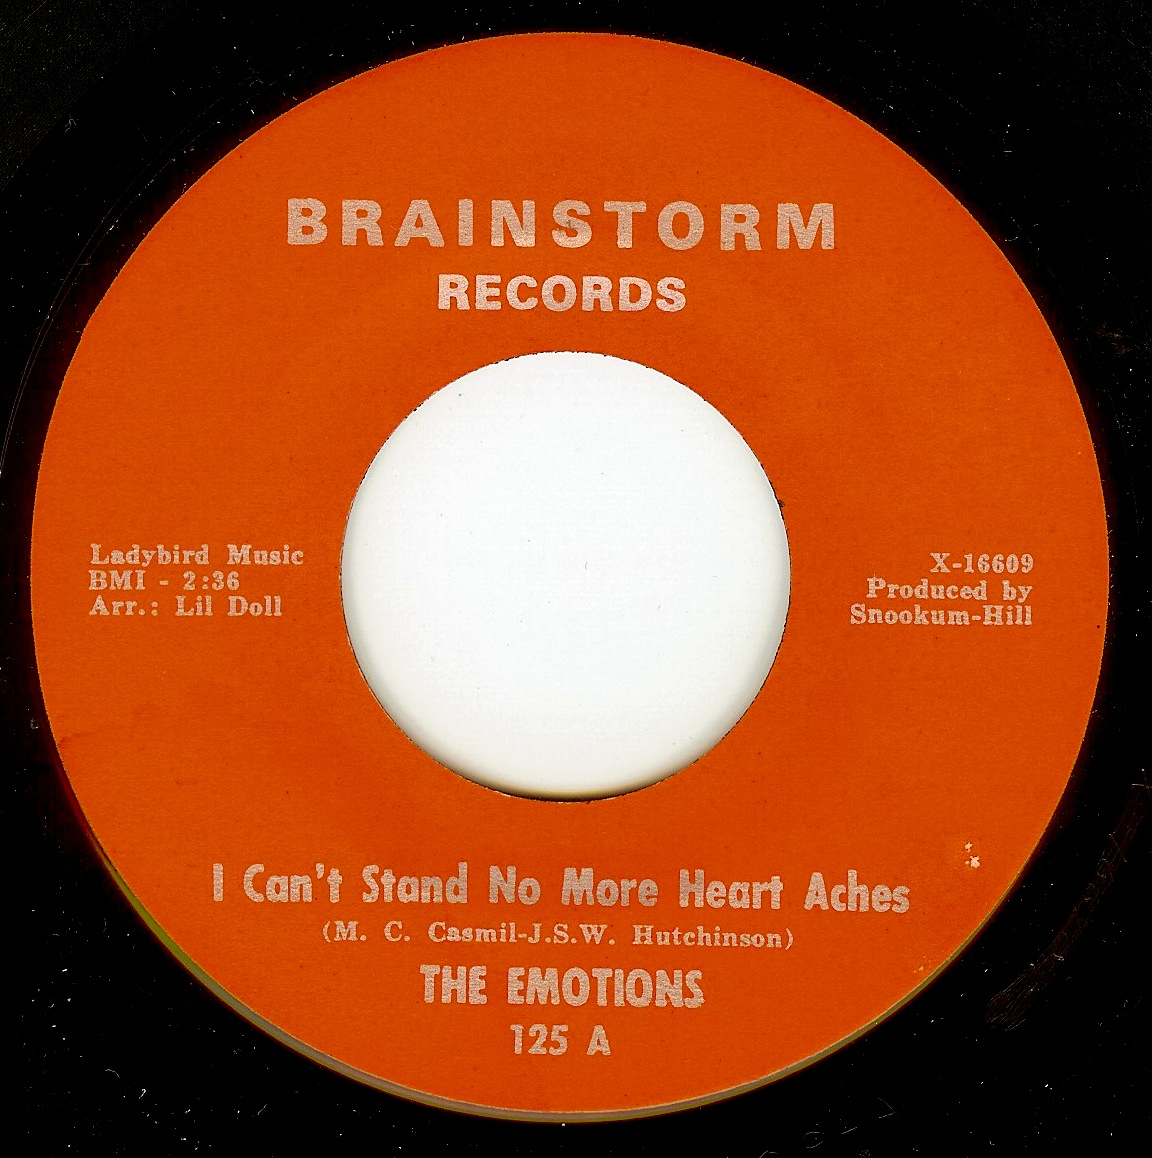 The Emotions - I Can't Stand No More Heart Aches